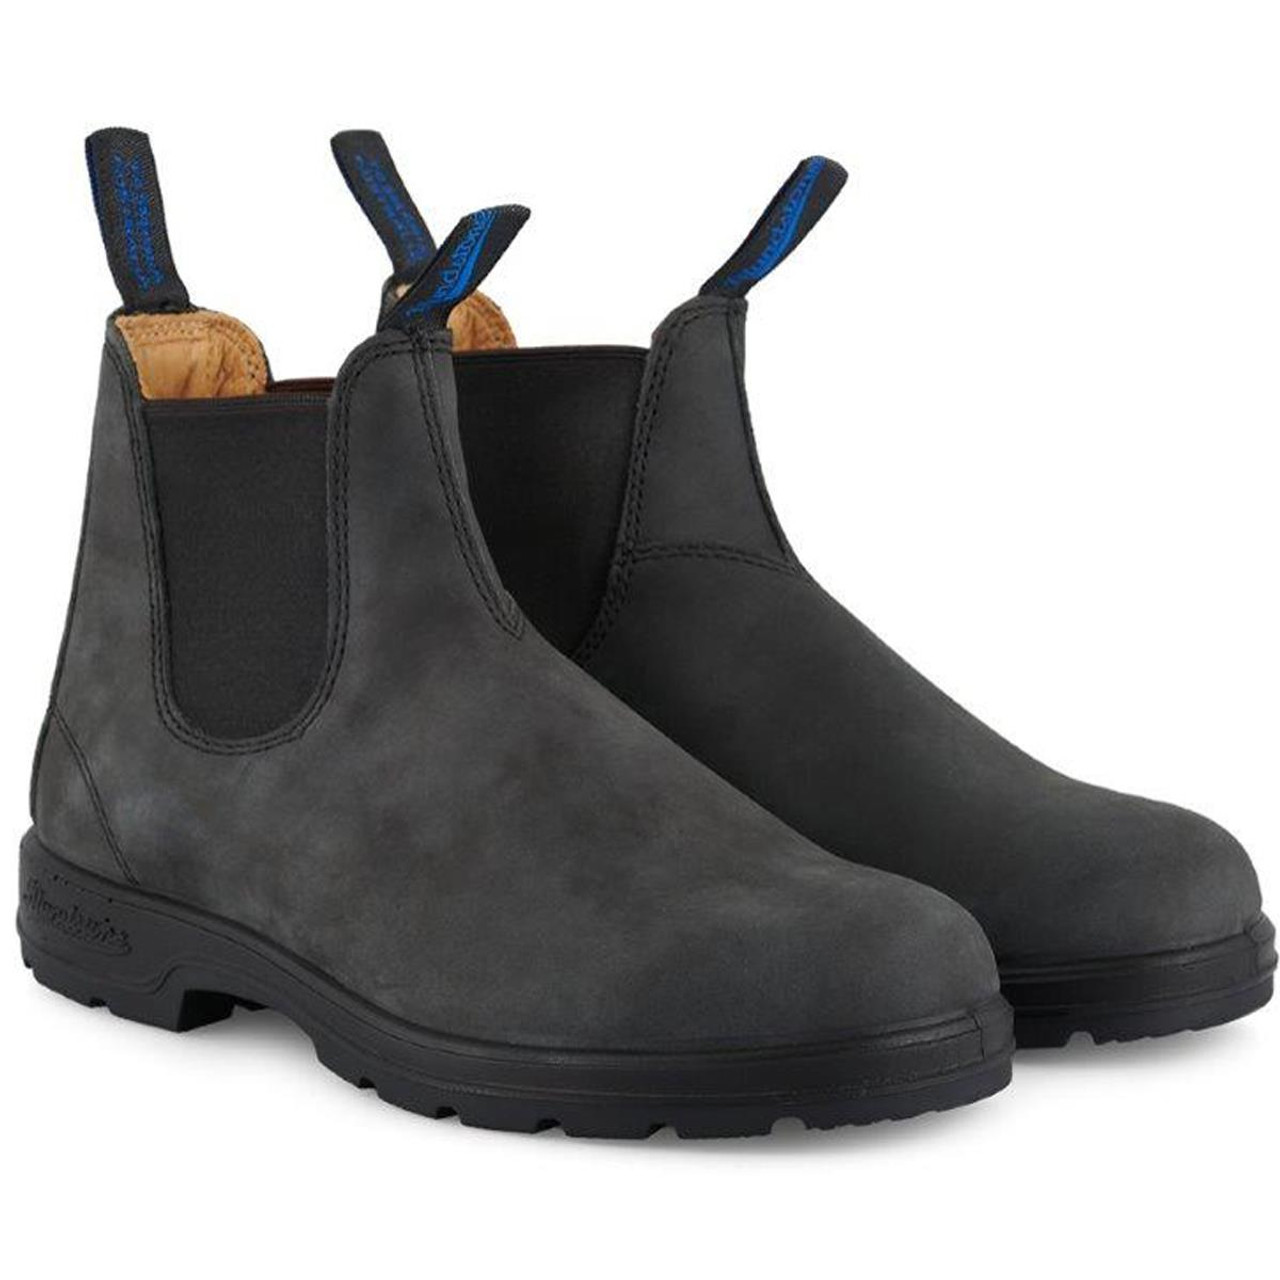 Rustic Black Blundstone Chelsea Boots